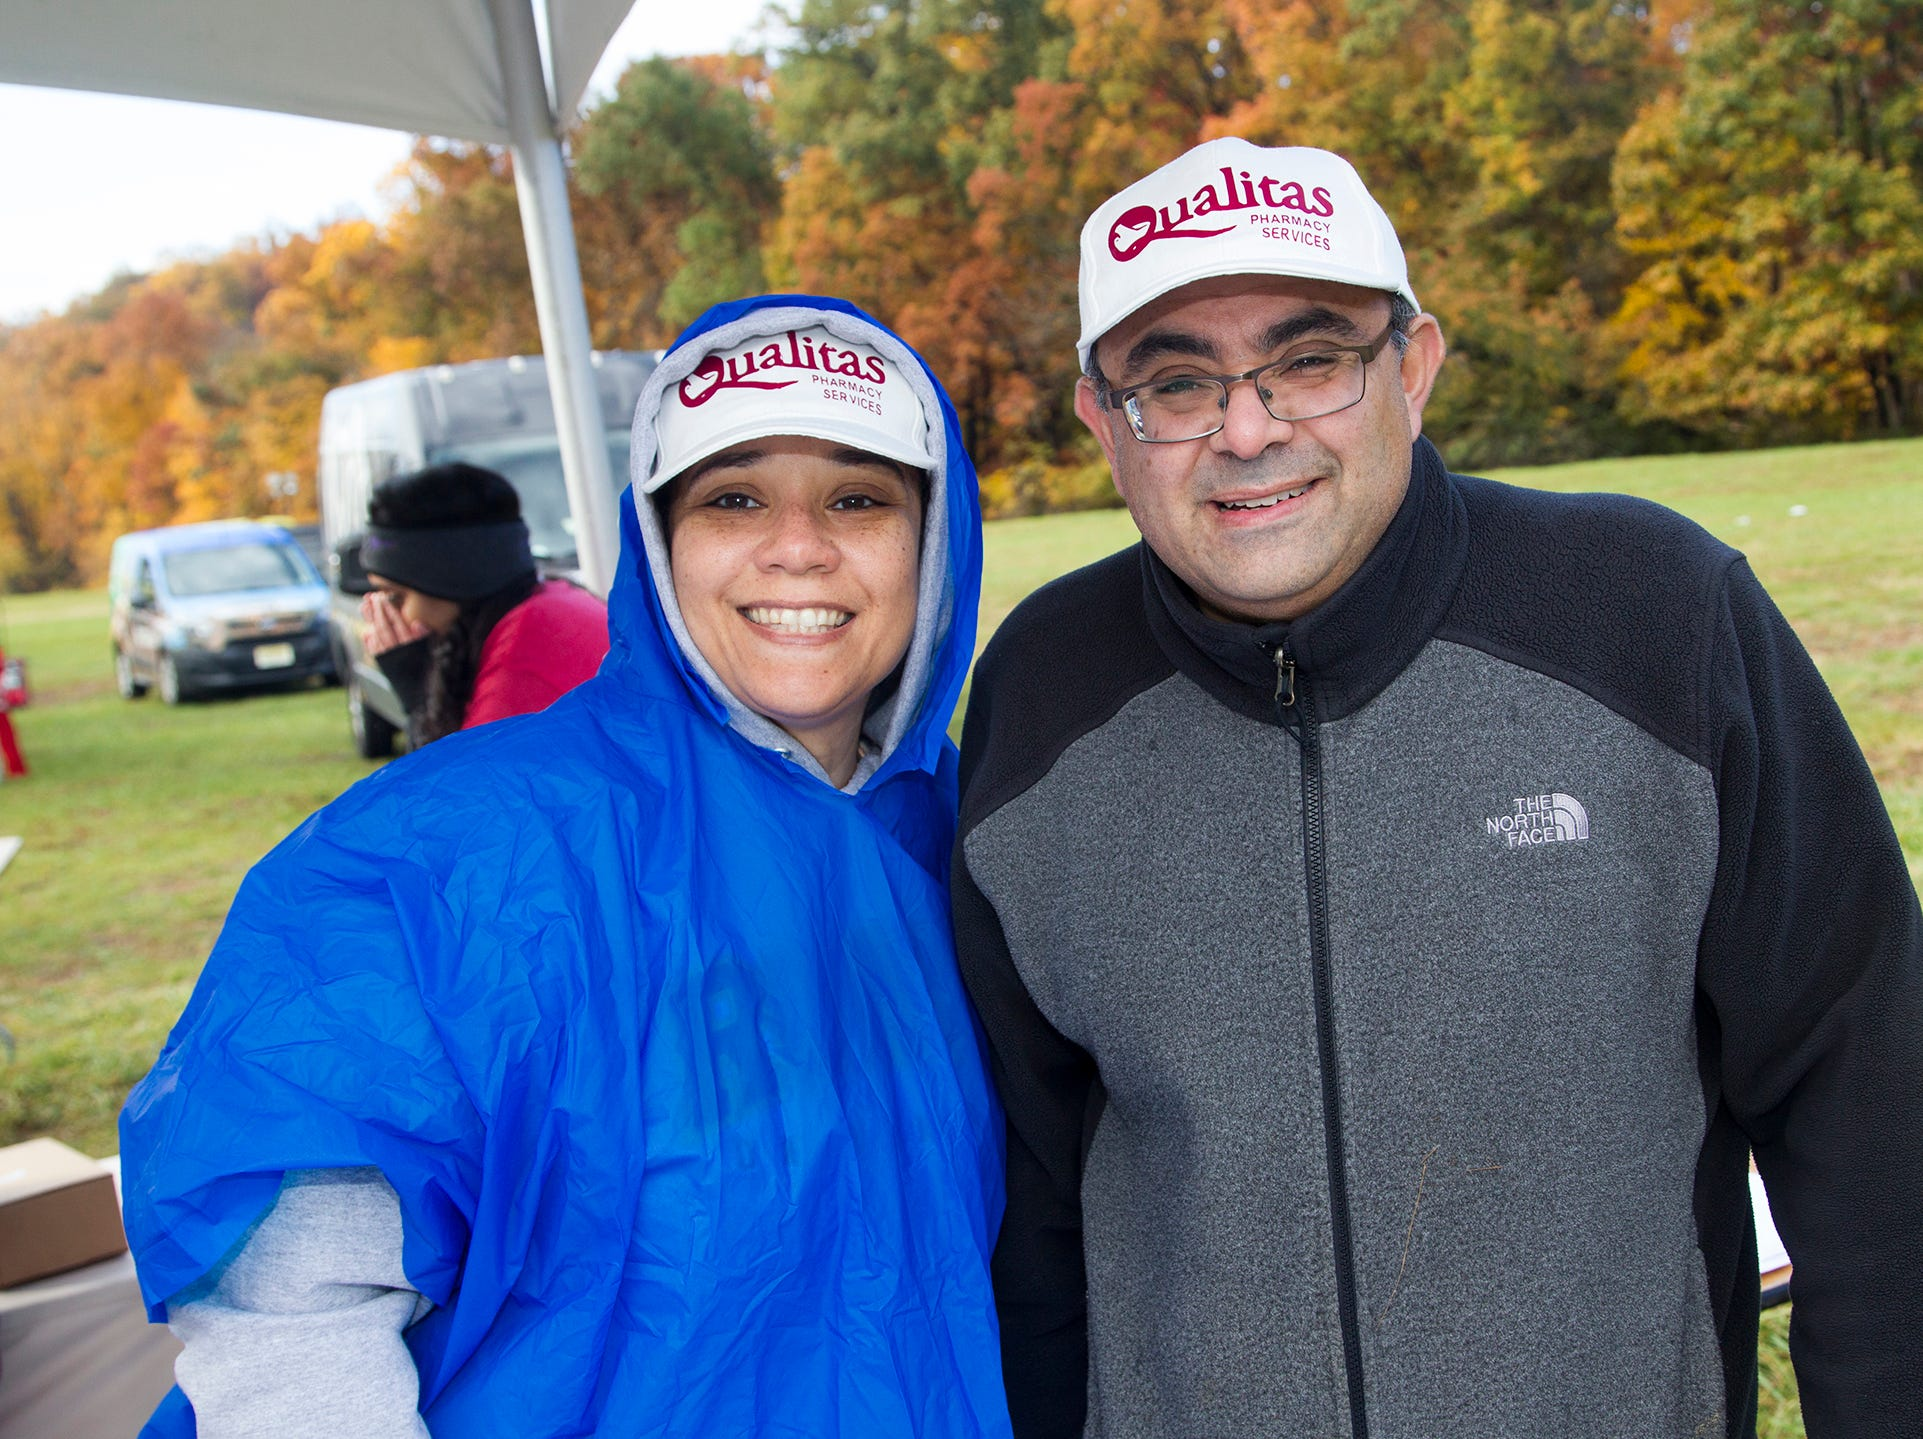 Anita and John of Qualitas. RWJBarnabas Health Running with the Devils 5K Run and Family Fun Walk at South Mountain Recreation in West Orange. 10/03/2018